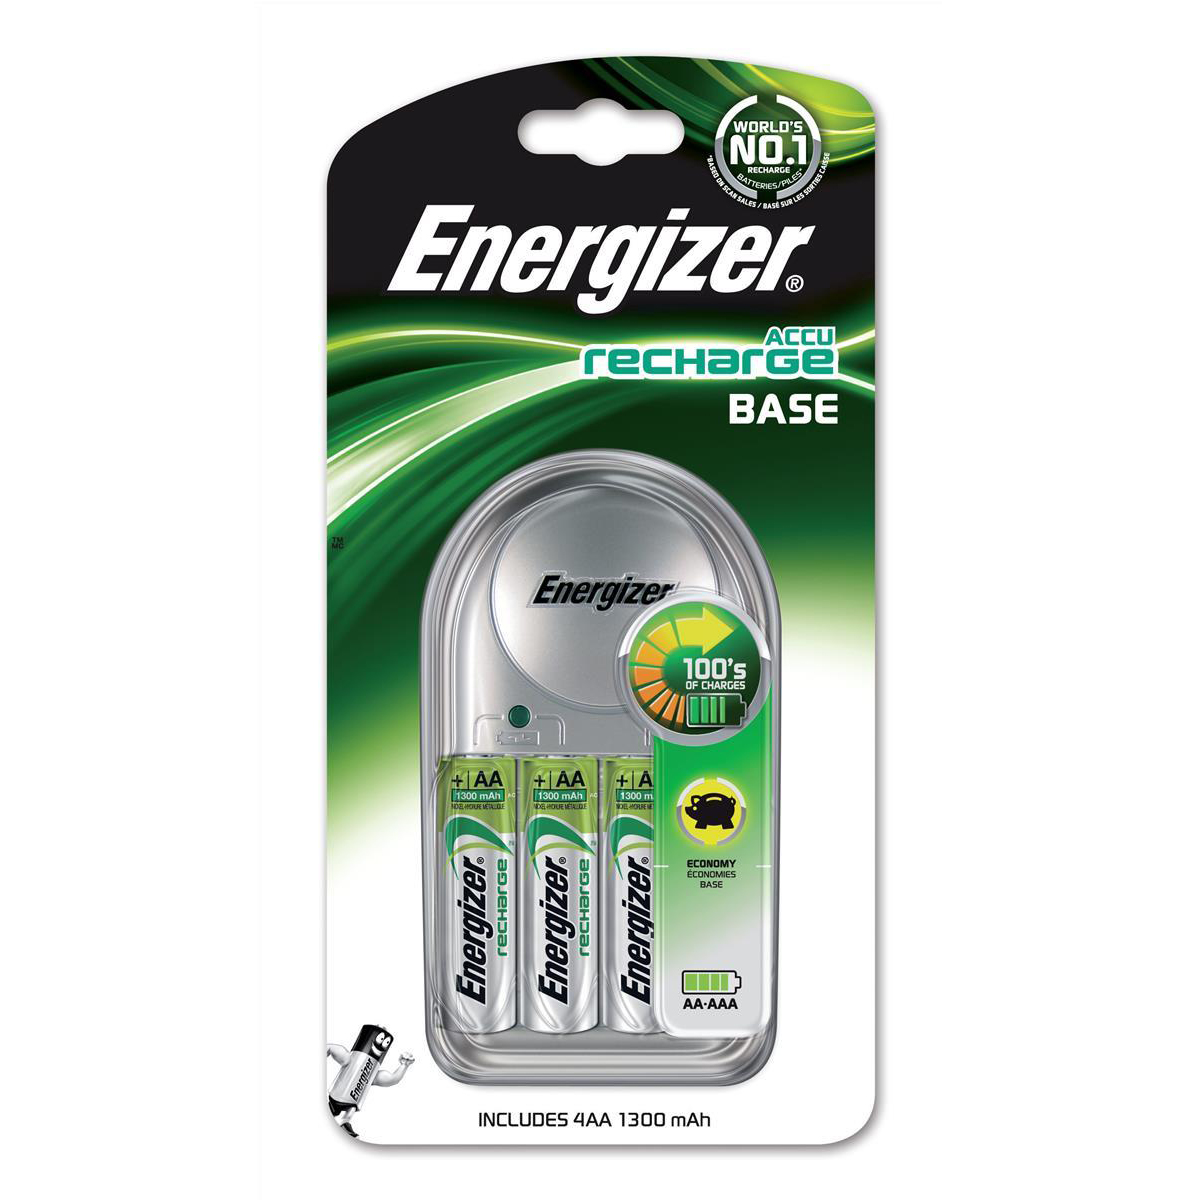 Base Charger 4xAA1300mah E300701600